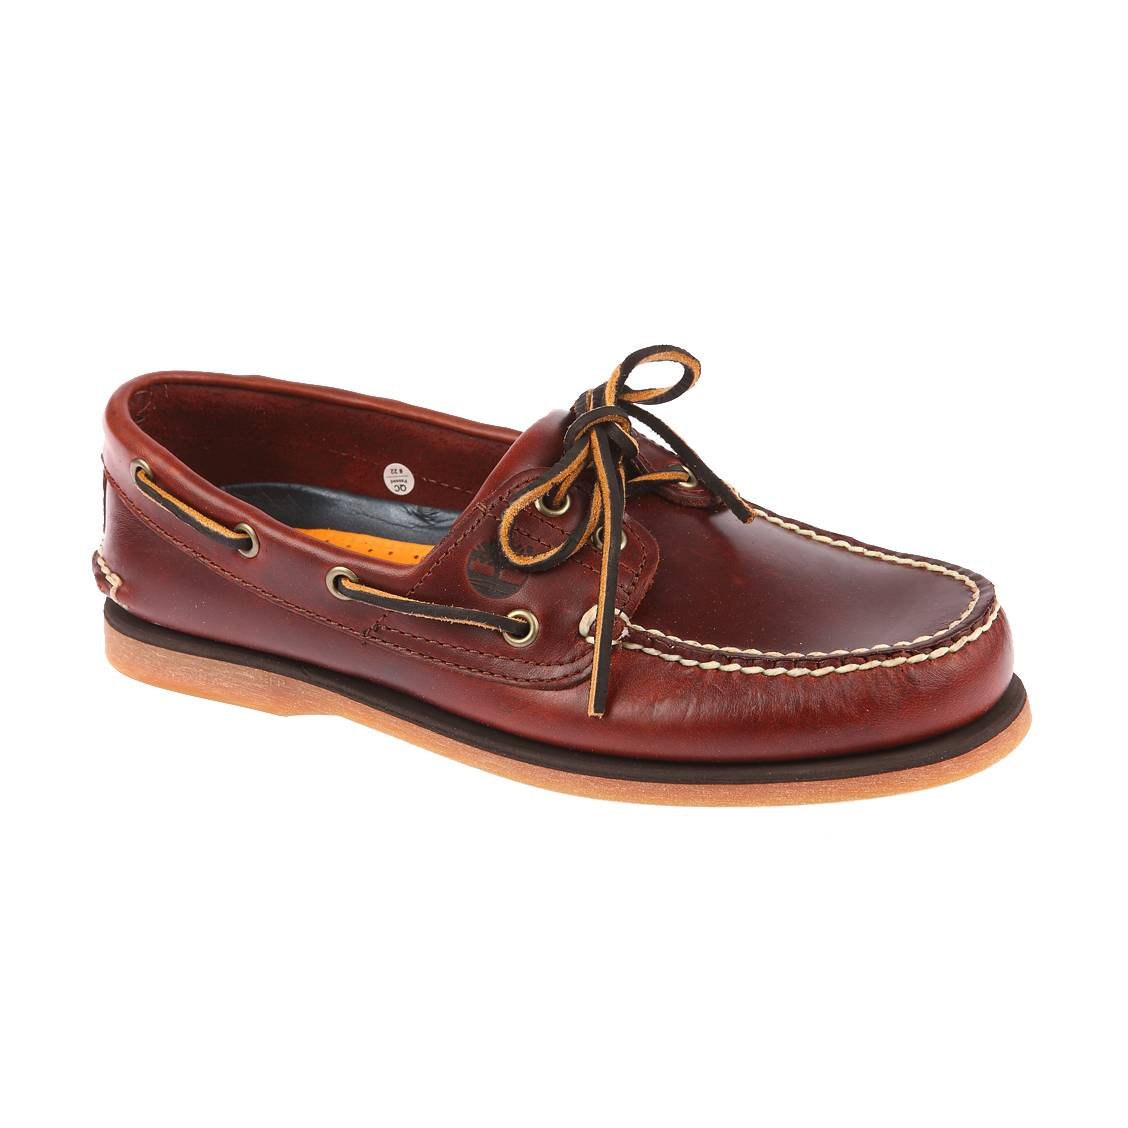 chaussures bateau icon 2 eye timberland en cuir marron rue des hommes. Black Bedroom Furniture Sets. Home Design Ideas